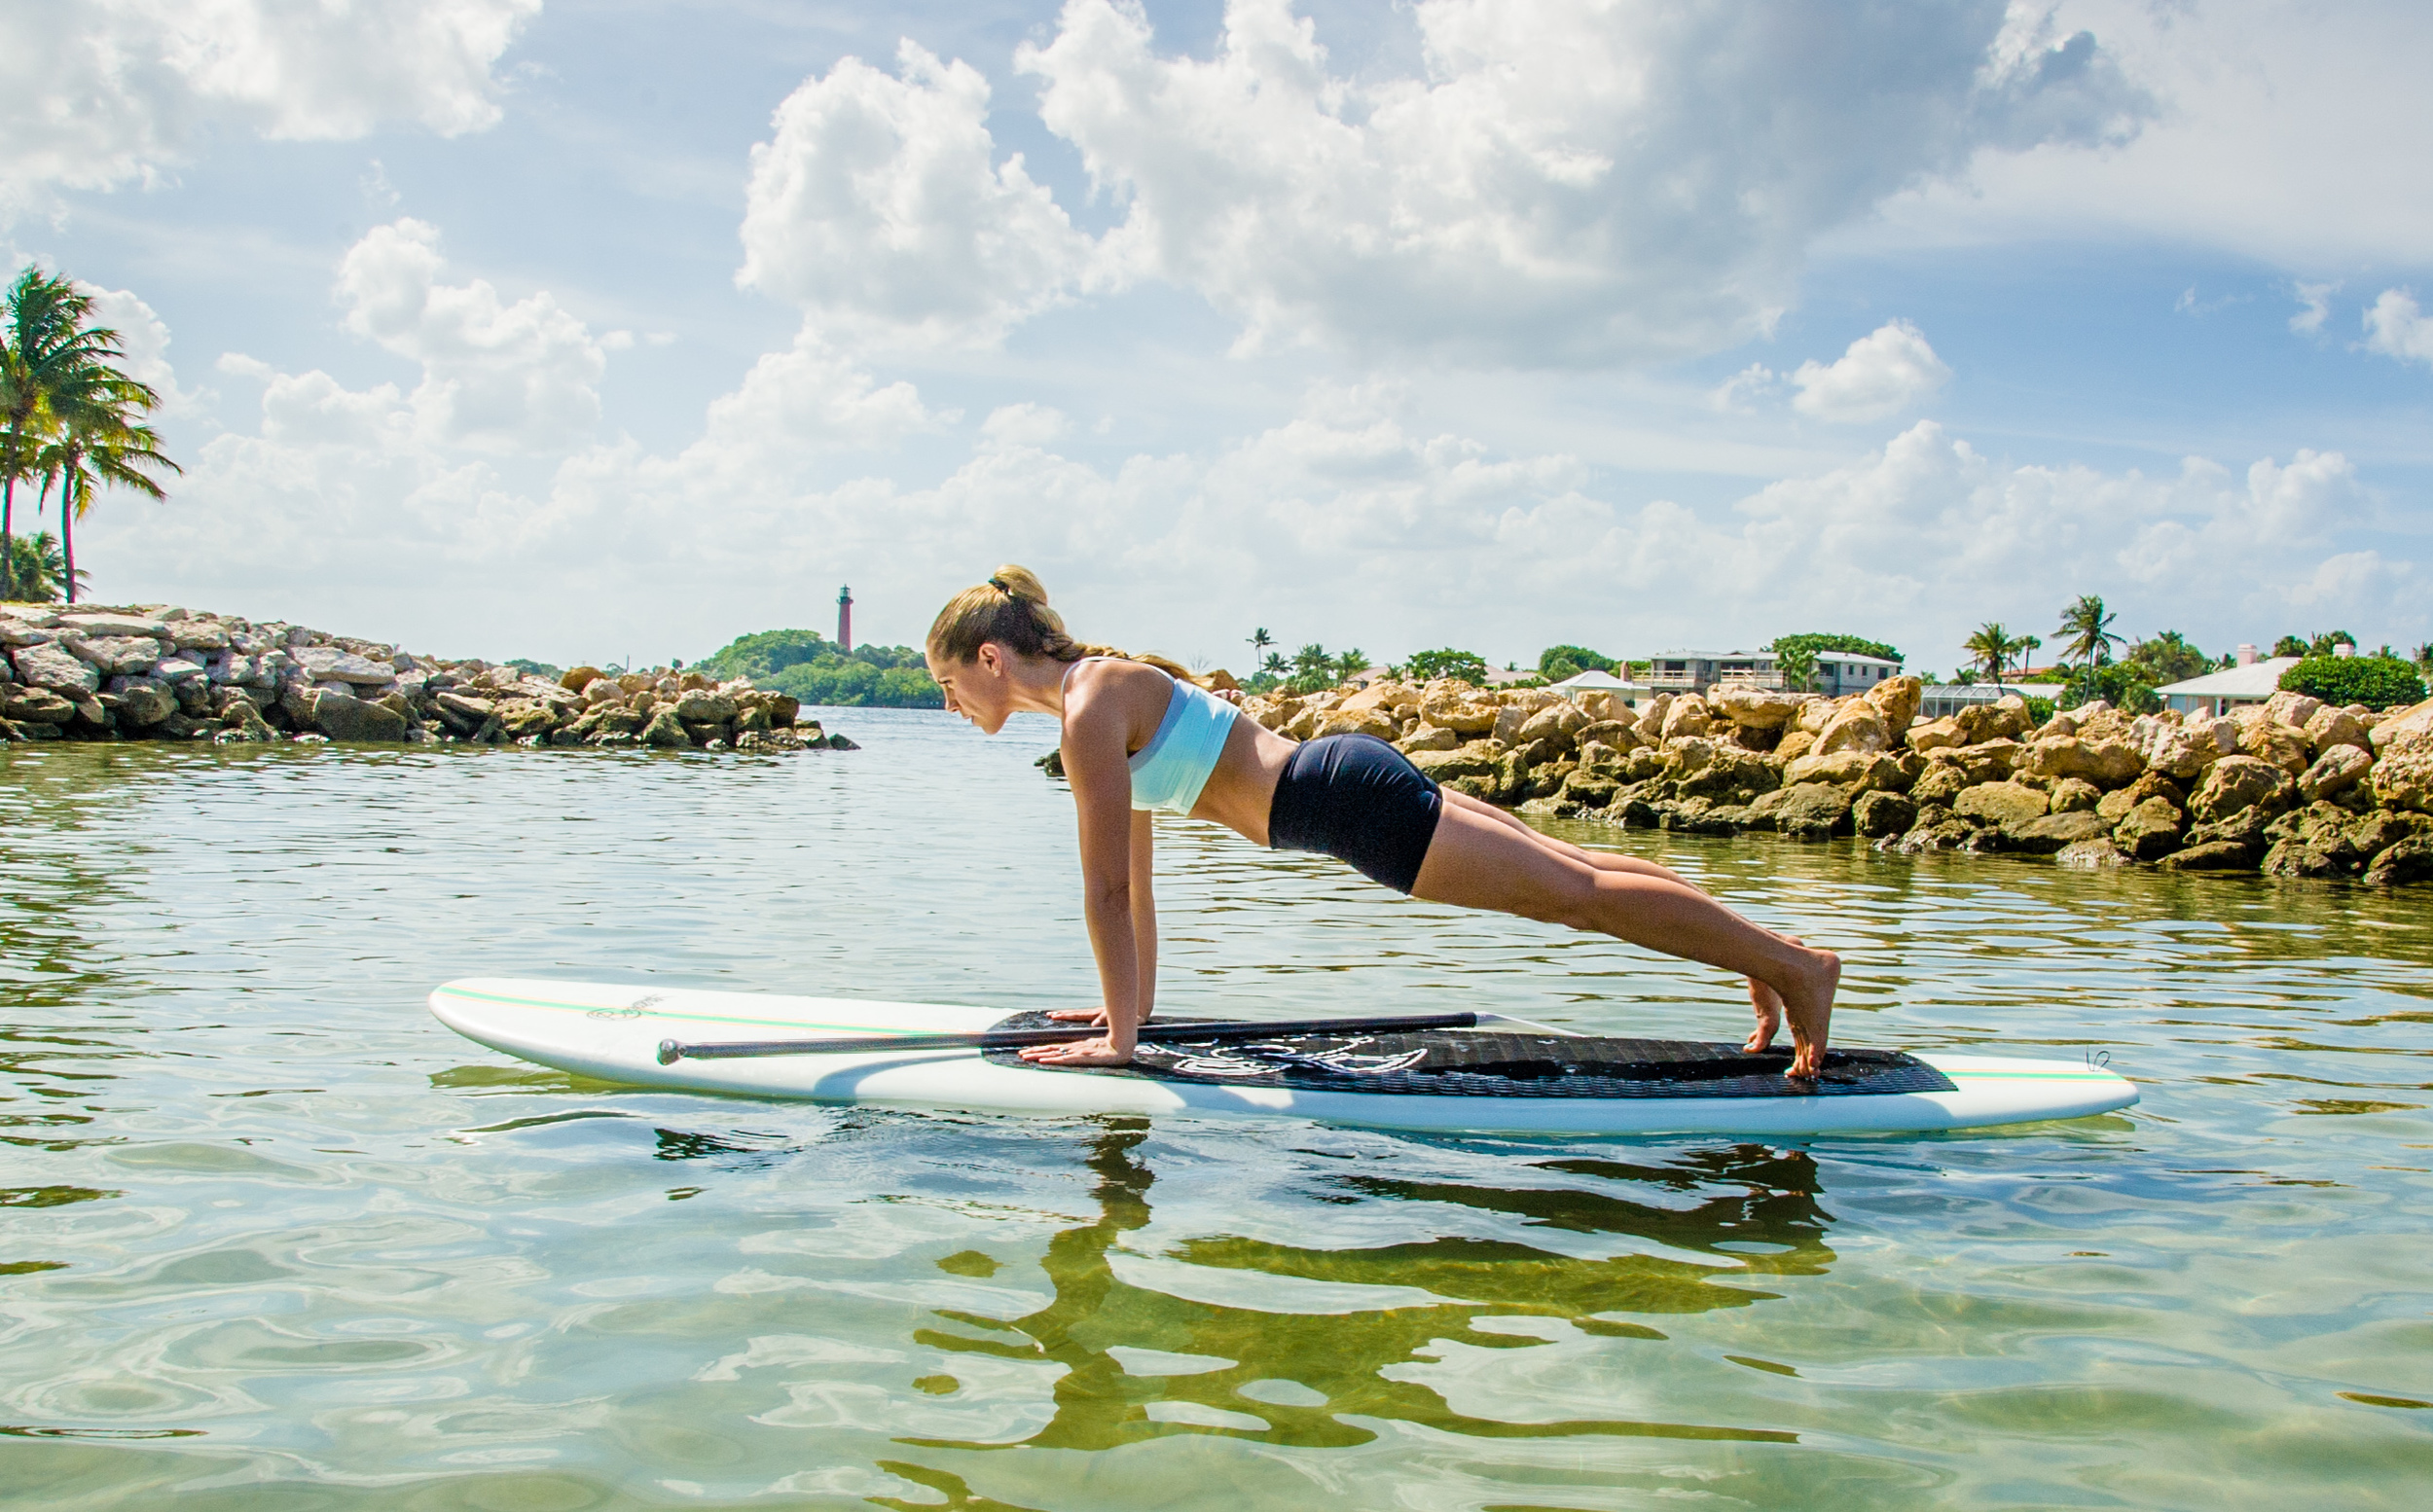 SUP Yoga- 3 Simple Moves for Beginners